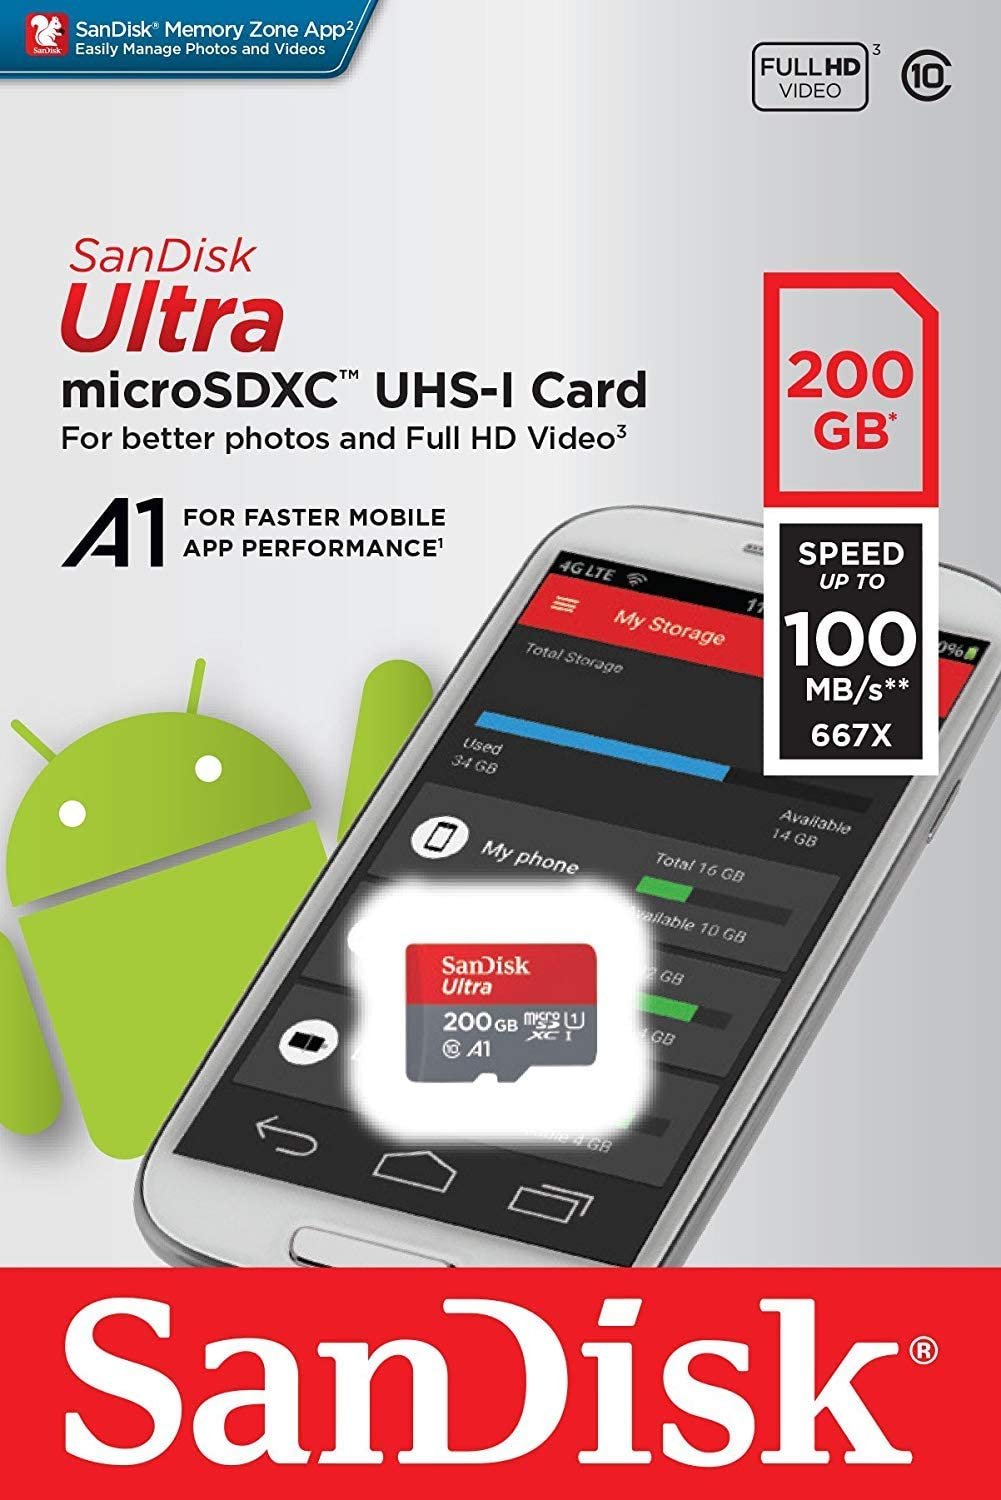 100MBs A1 U1 C10 Works with SanDisk SanDisk Ultra 200GB MicroSDXC Verified for HTC Desire 600 by SanFlash